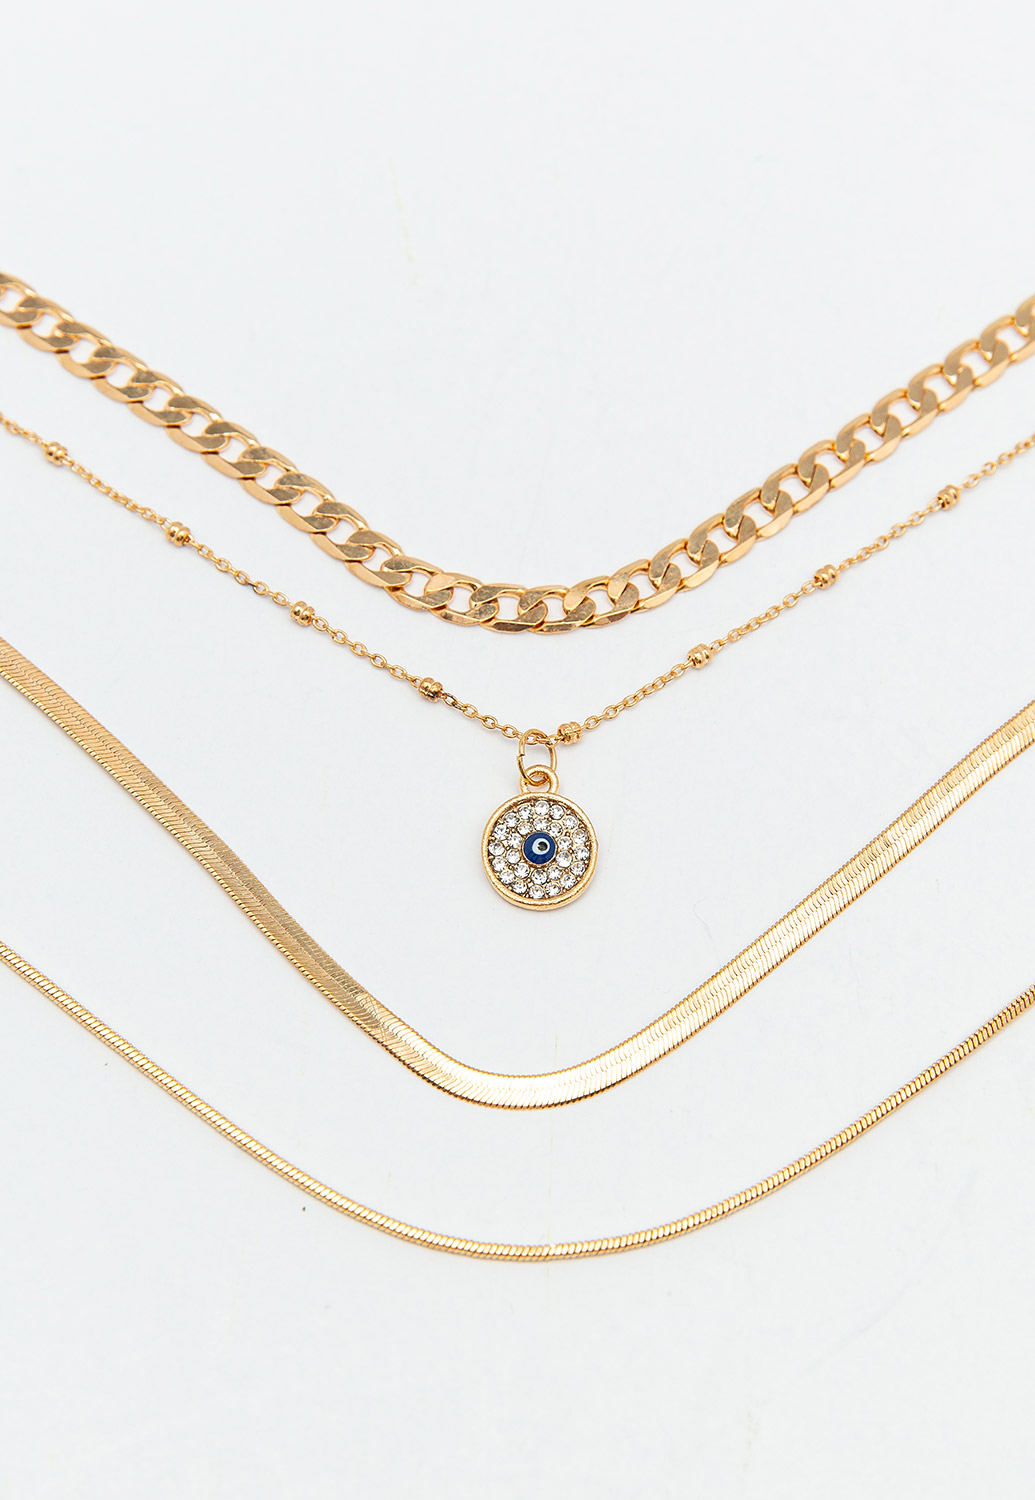 Multi-Layered Gold Chain Necklace With Charm